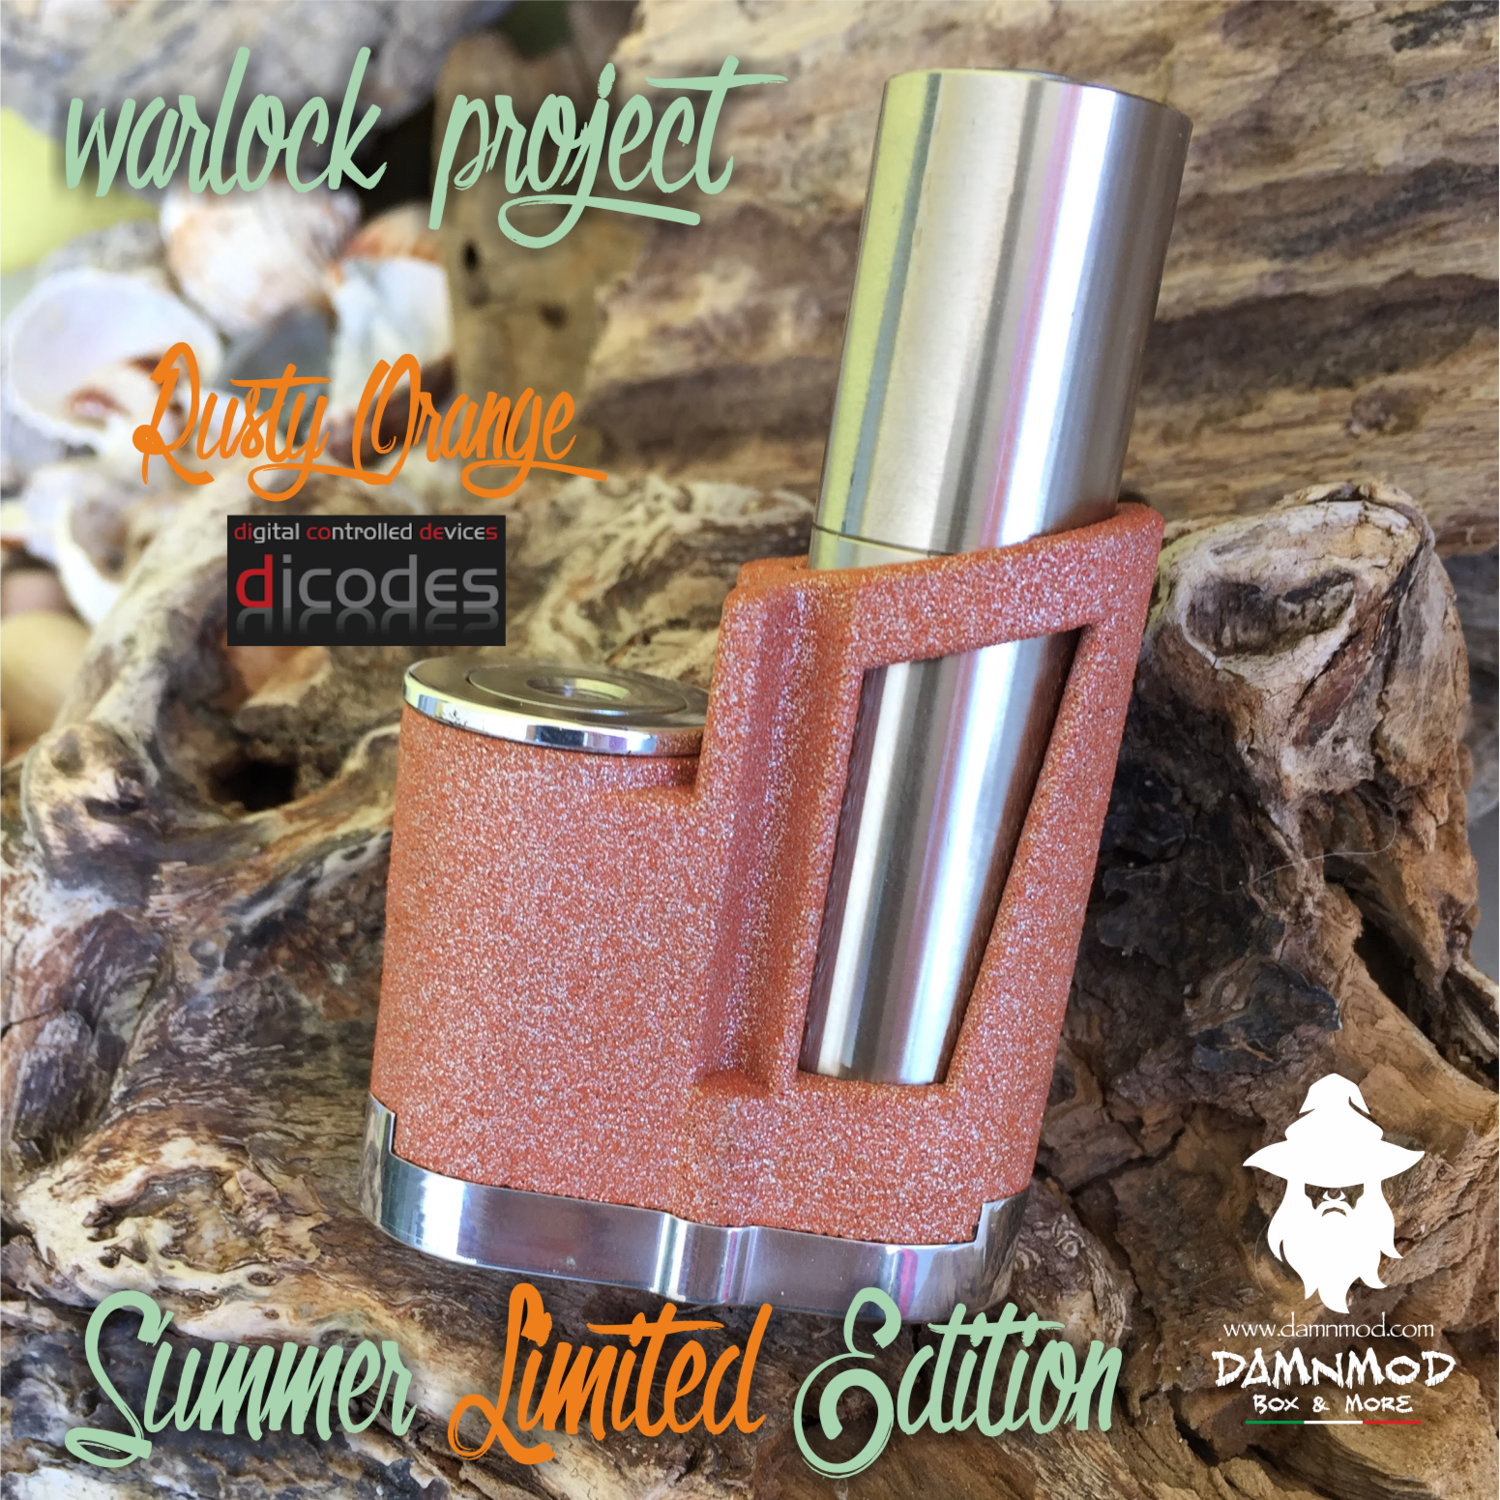 """WARLOCK PROJECT """"SUMMER LIMITED EDITION"""" DICODES BF60 - ALUMIDE"""